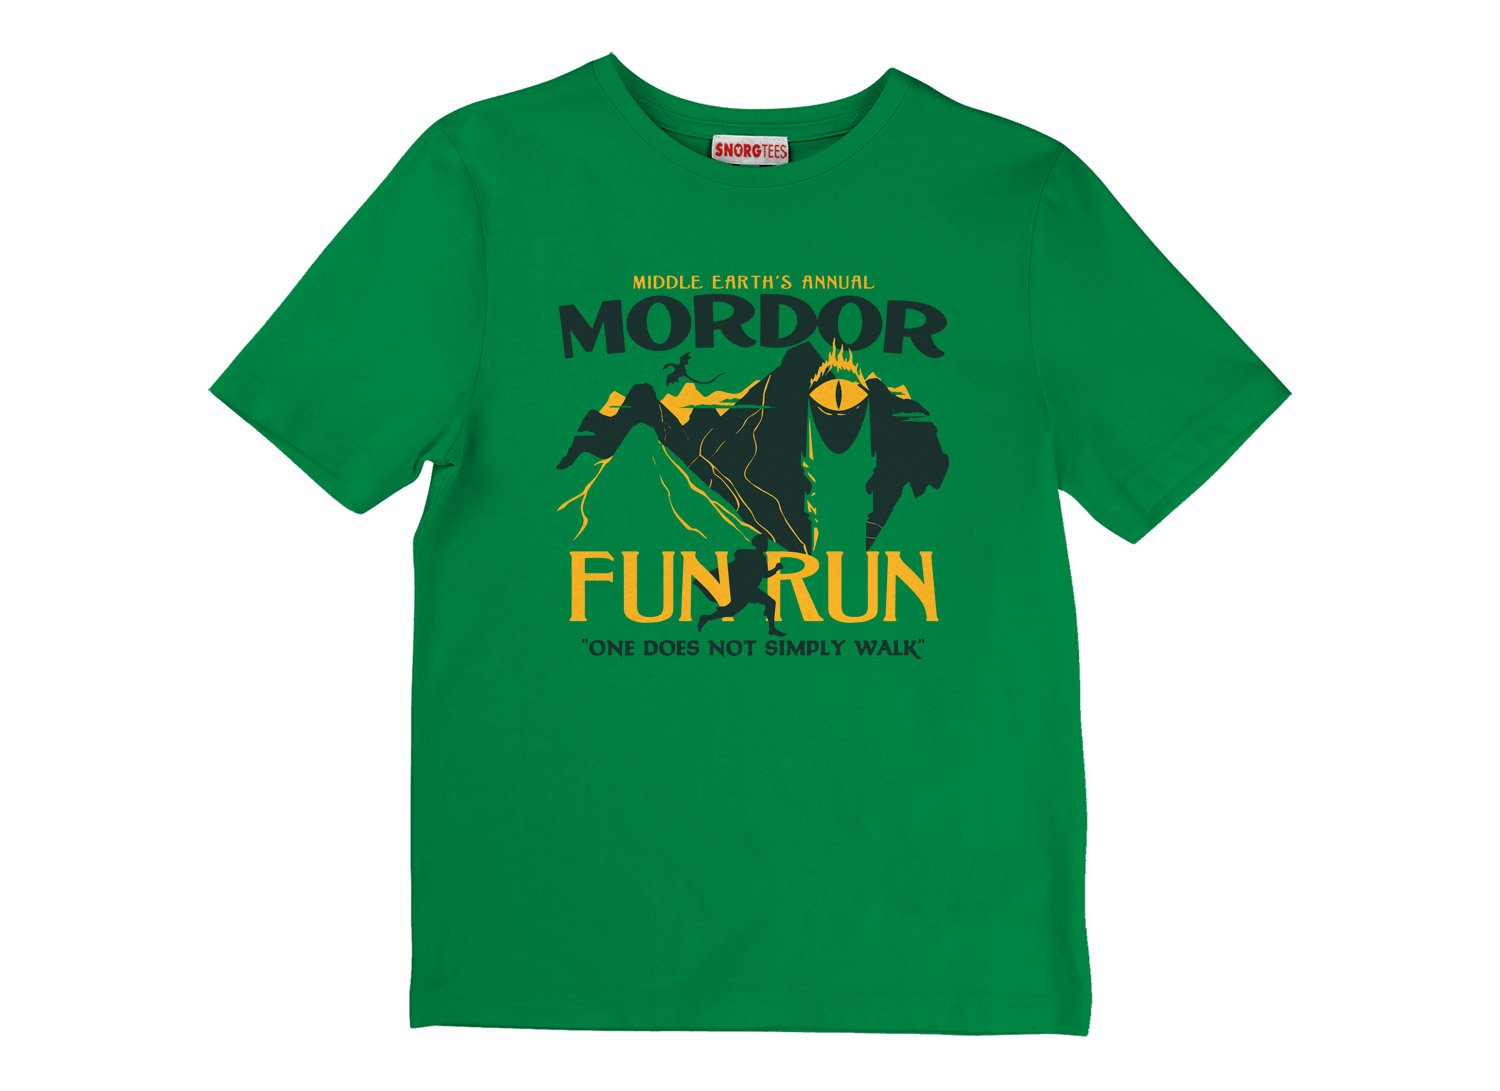 Mordor Fun Run on Kids T-Shirt